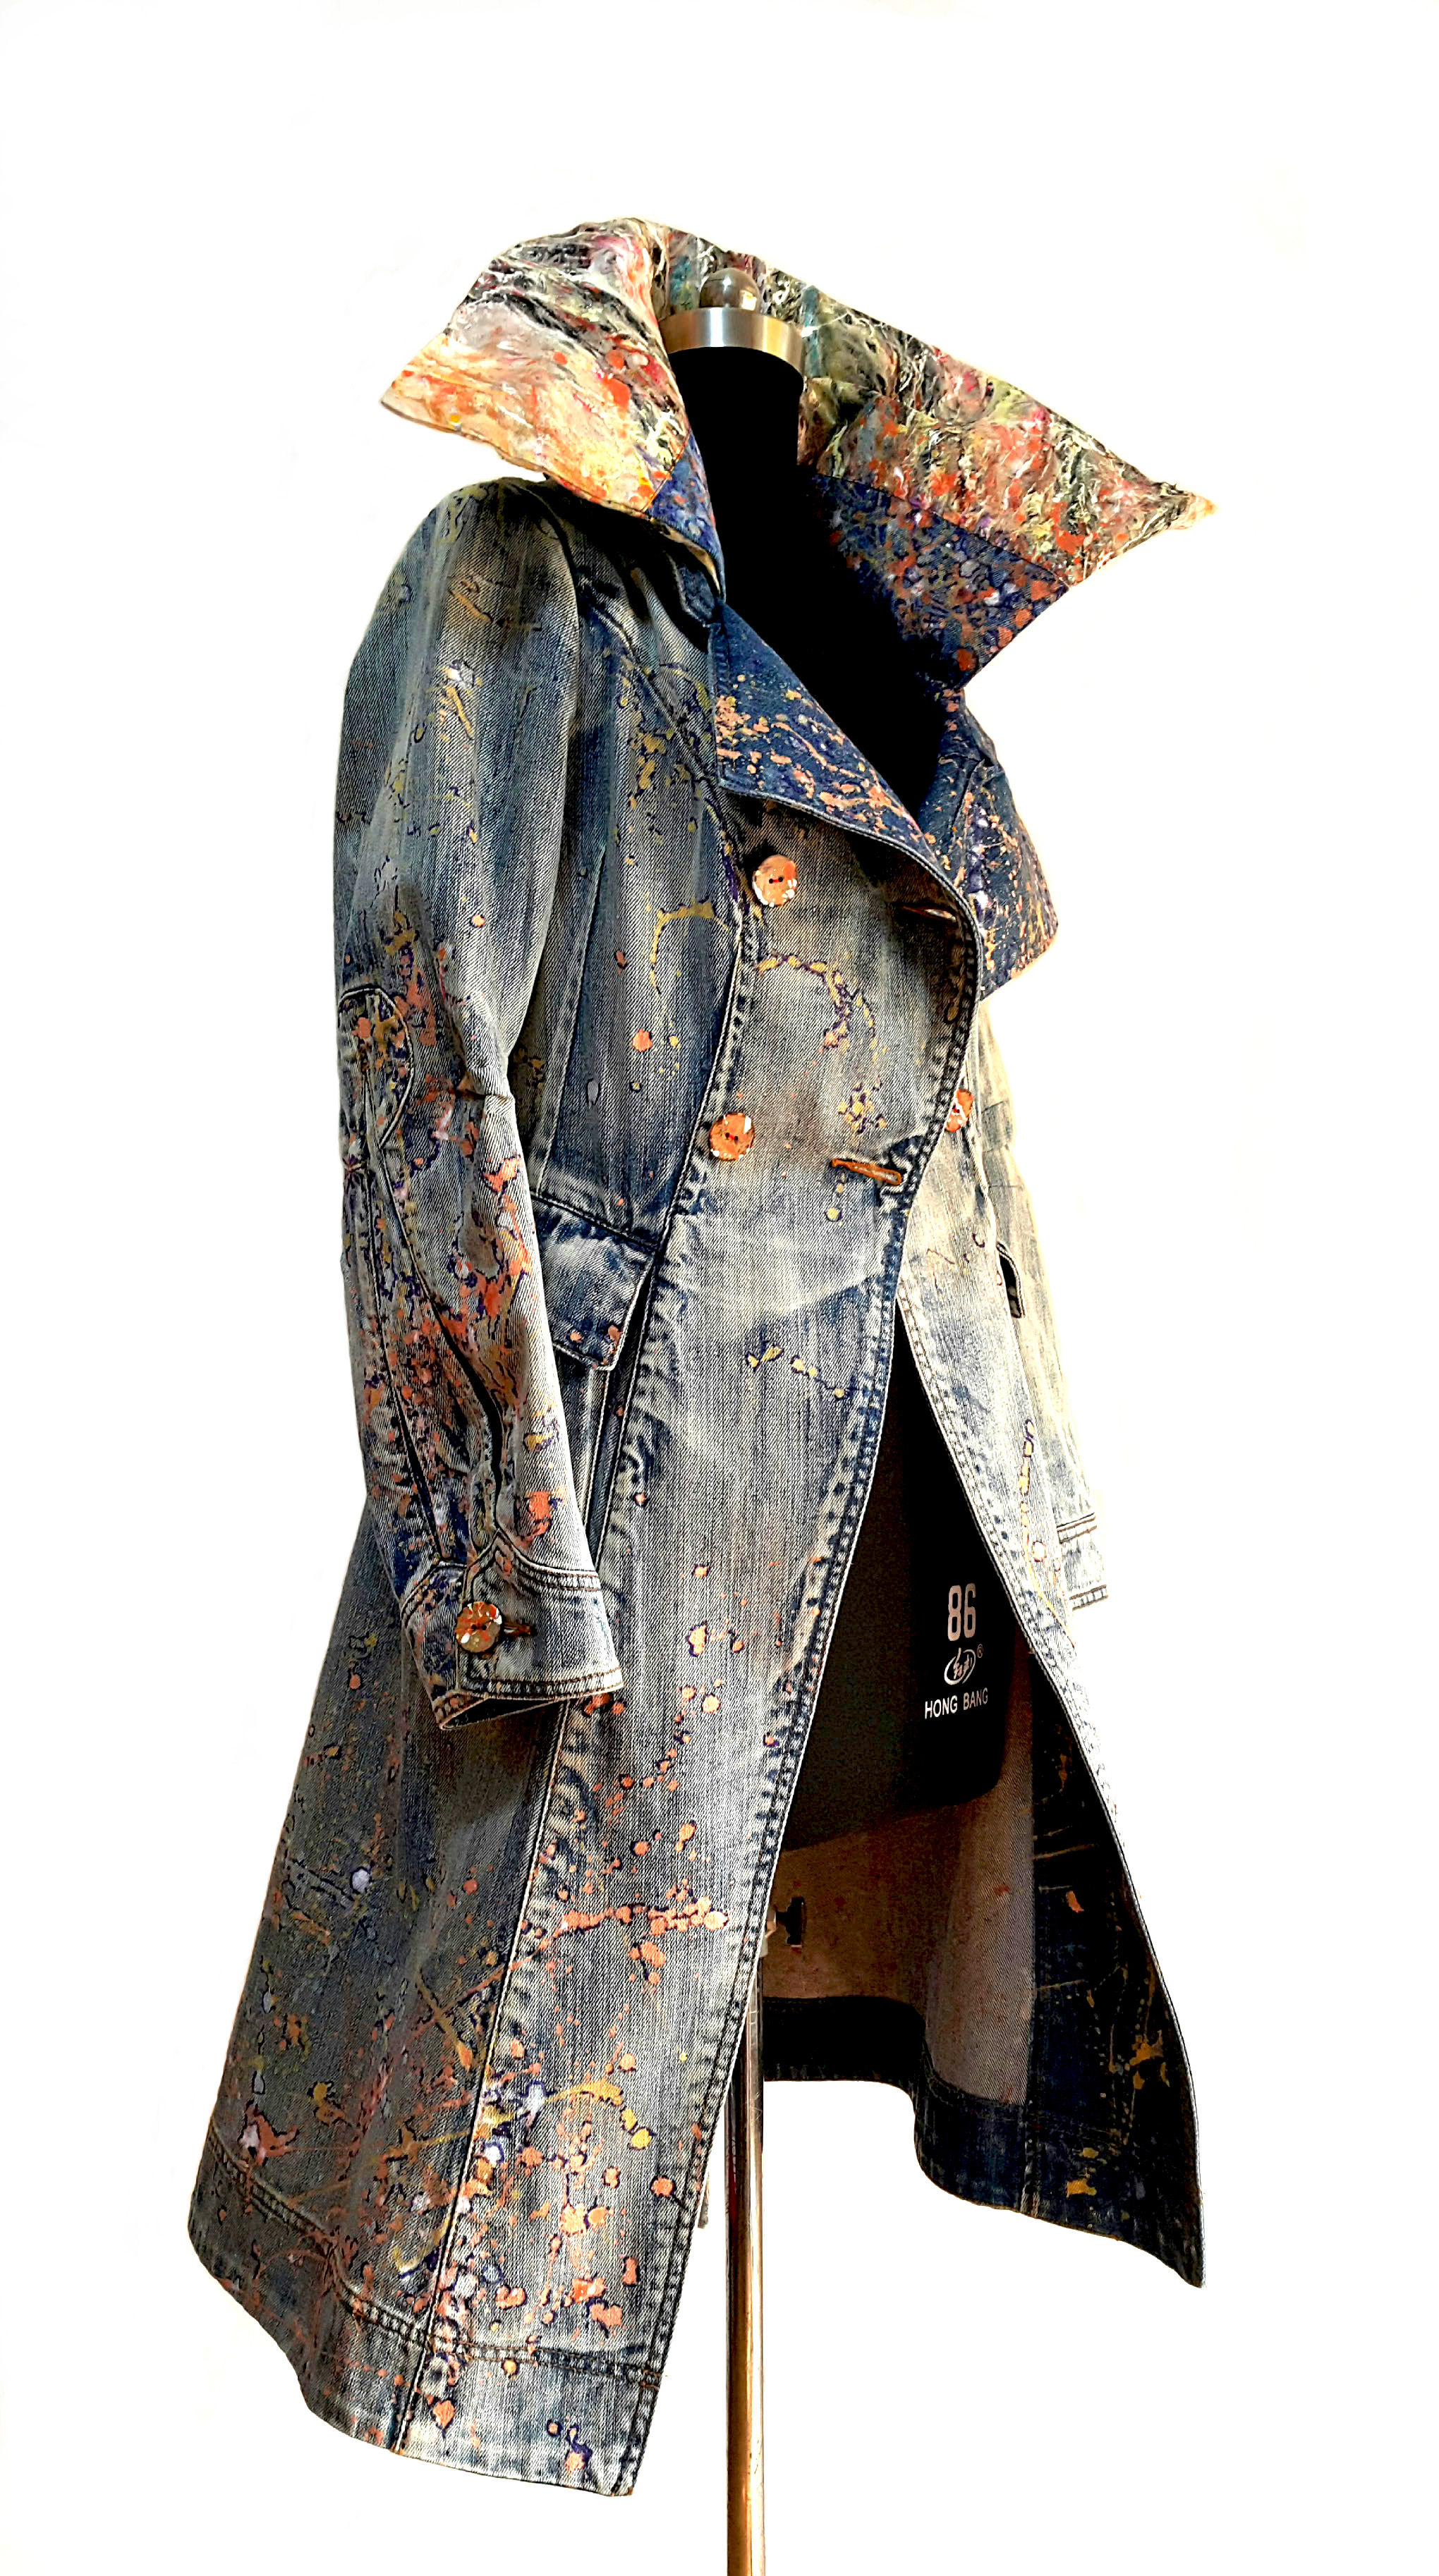 Art-a-porter: Denim coat transformed